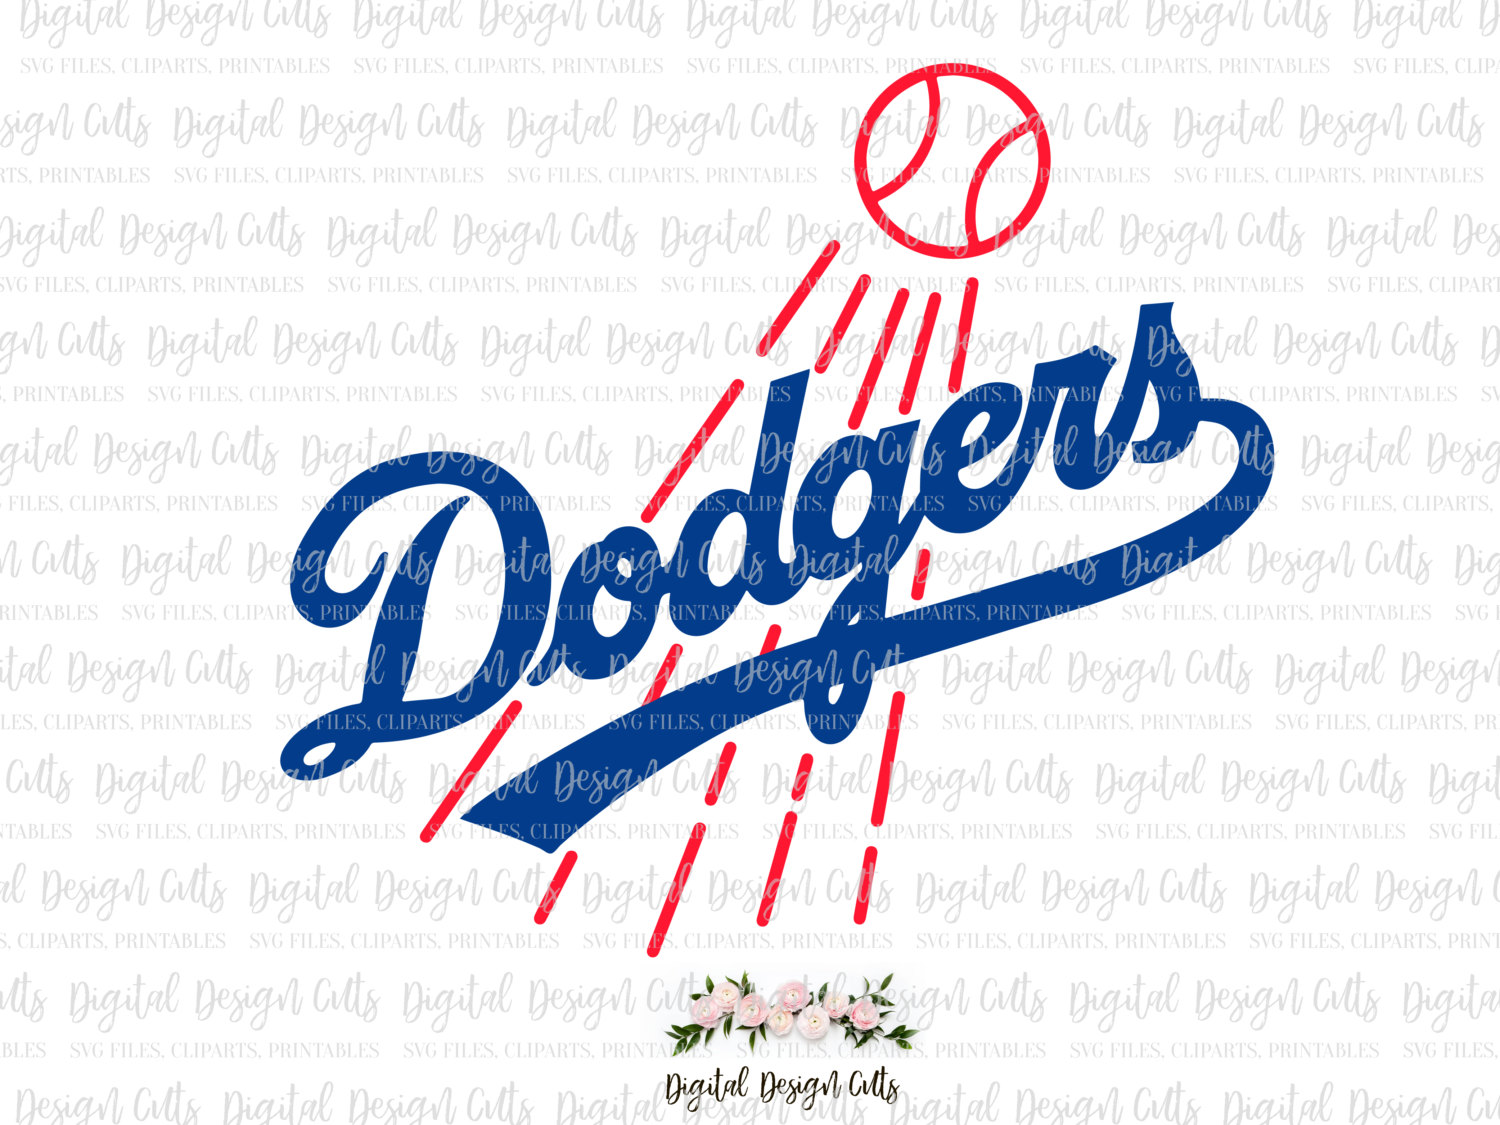 La Dodgers Clipart At Getdrawings Free For Personal Use La